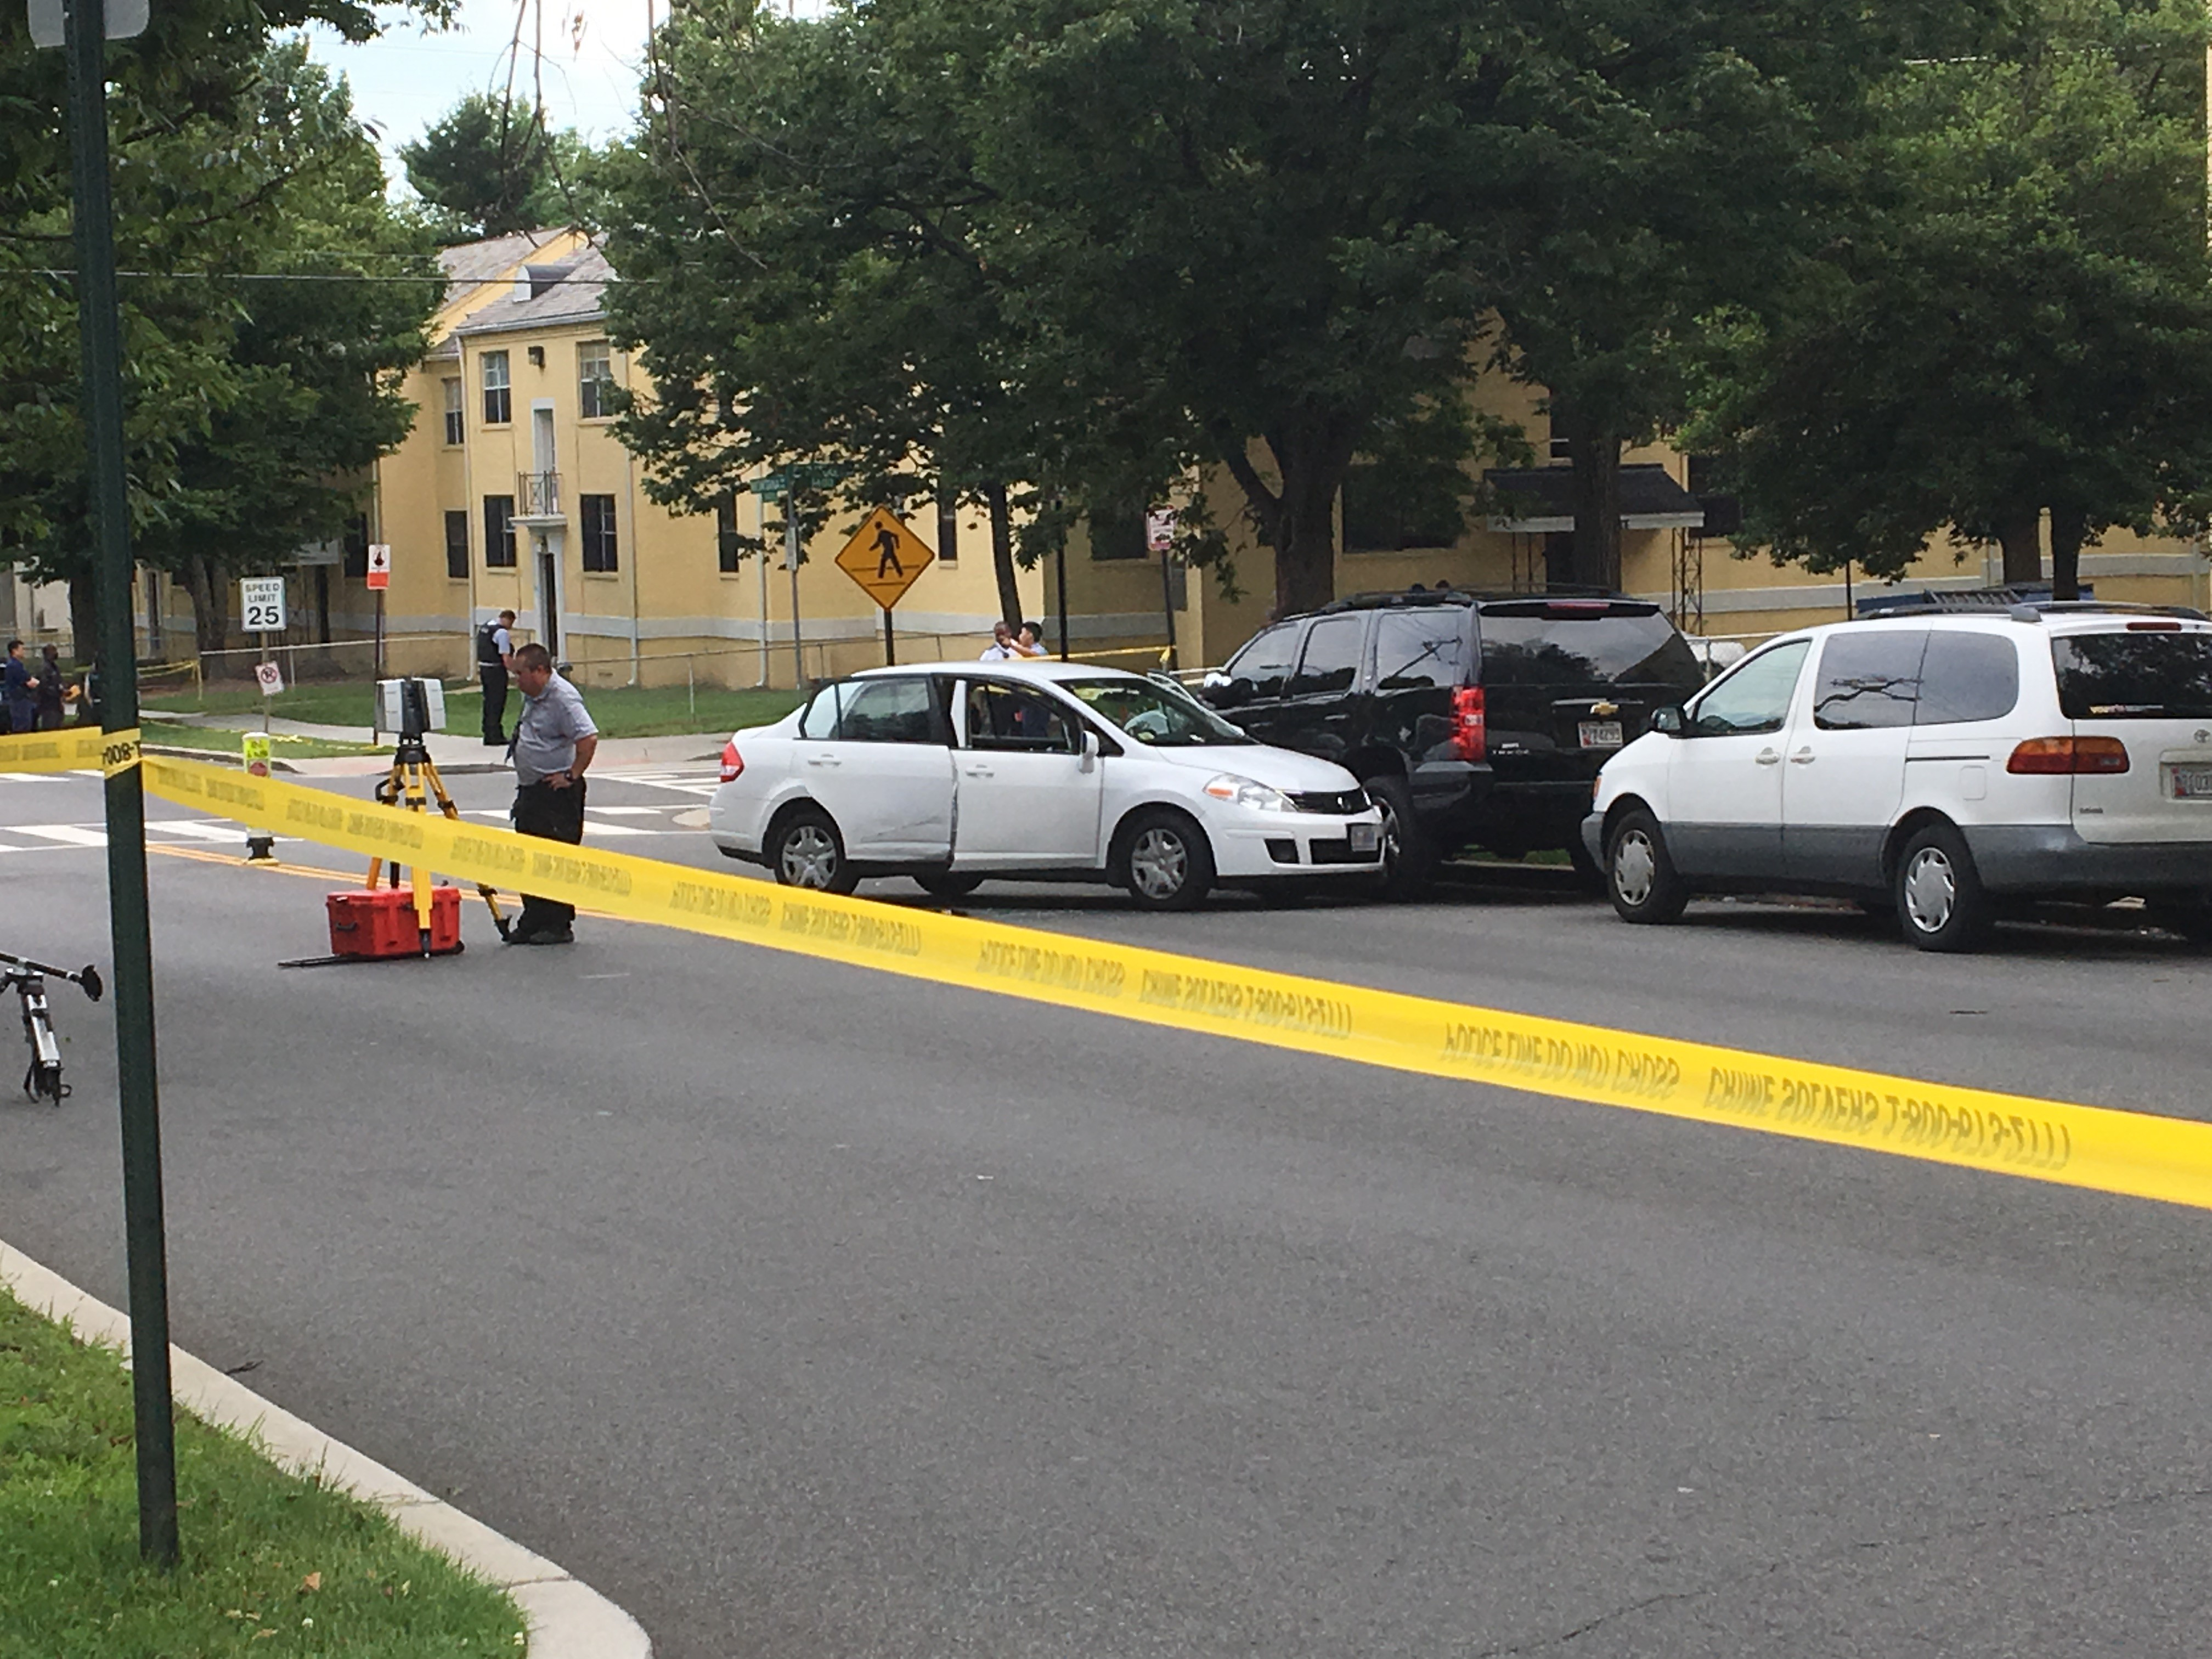 Police: Man, 17-year-old girl shot in Northeast DC, officers searching for suspects (ABC7)